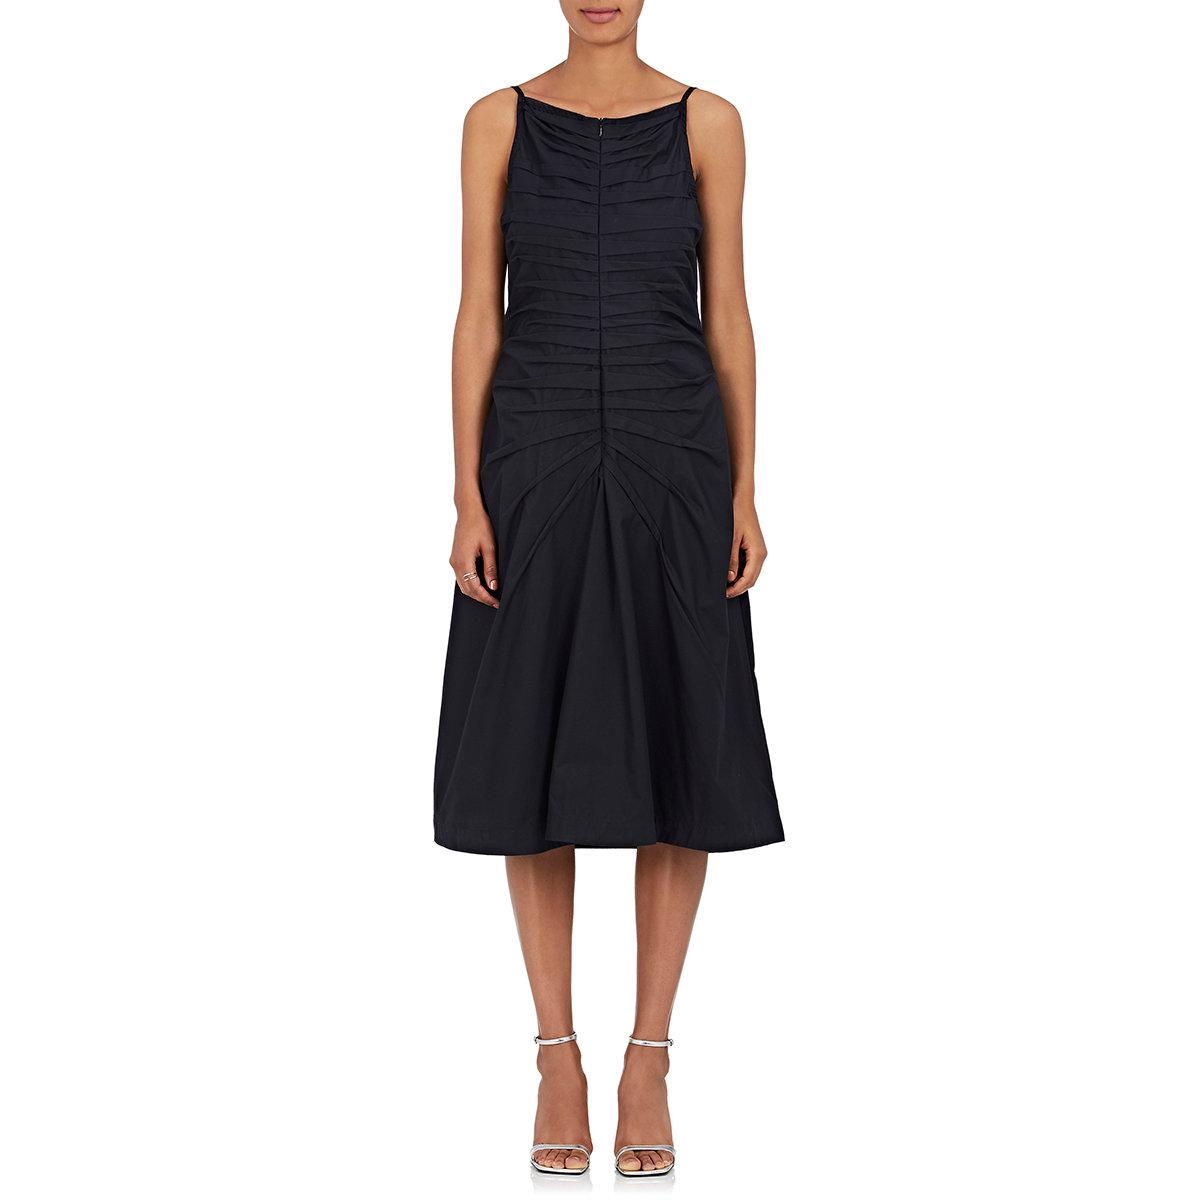 Womens Pleated-Front Cotton Poplin Midi-Dress Teija Sale Clearance Store Footlocker Cheap Online Clearance The Cheapest Buy Cheap Find Great CTBsVRE1cP